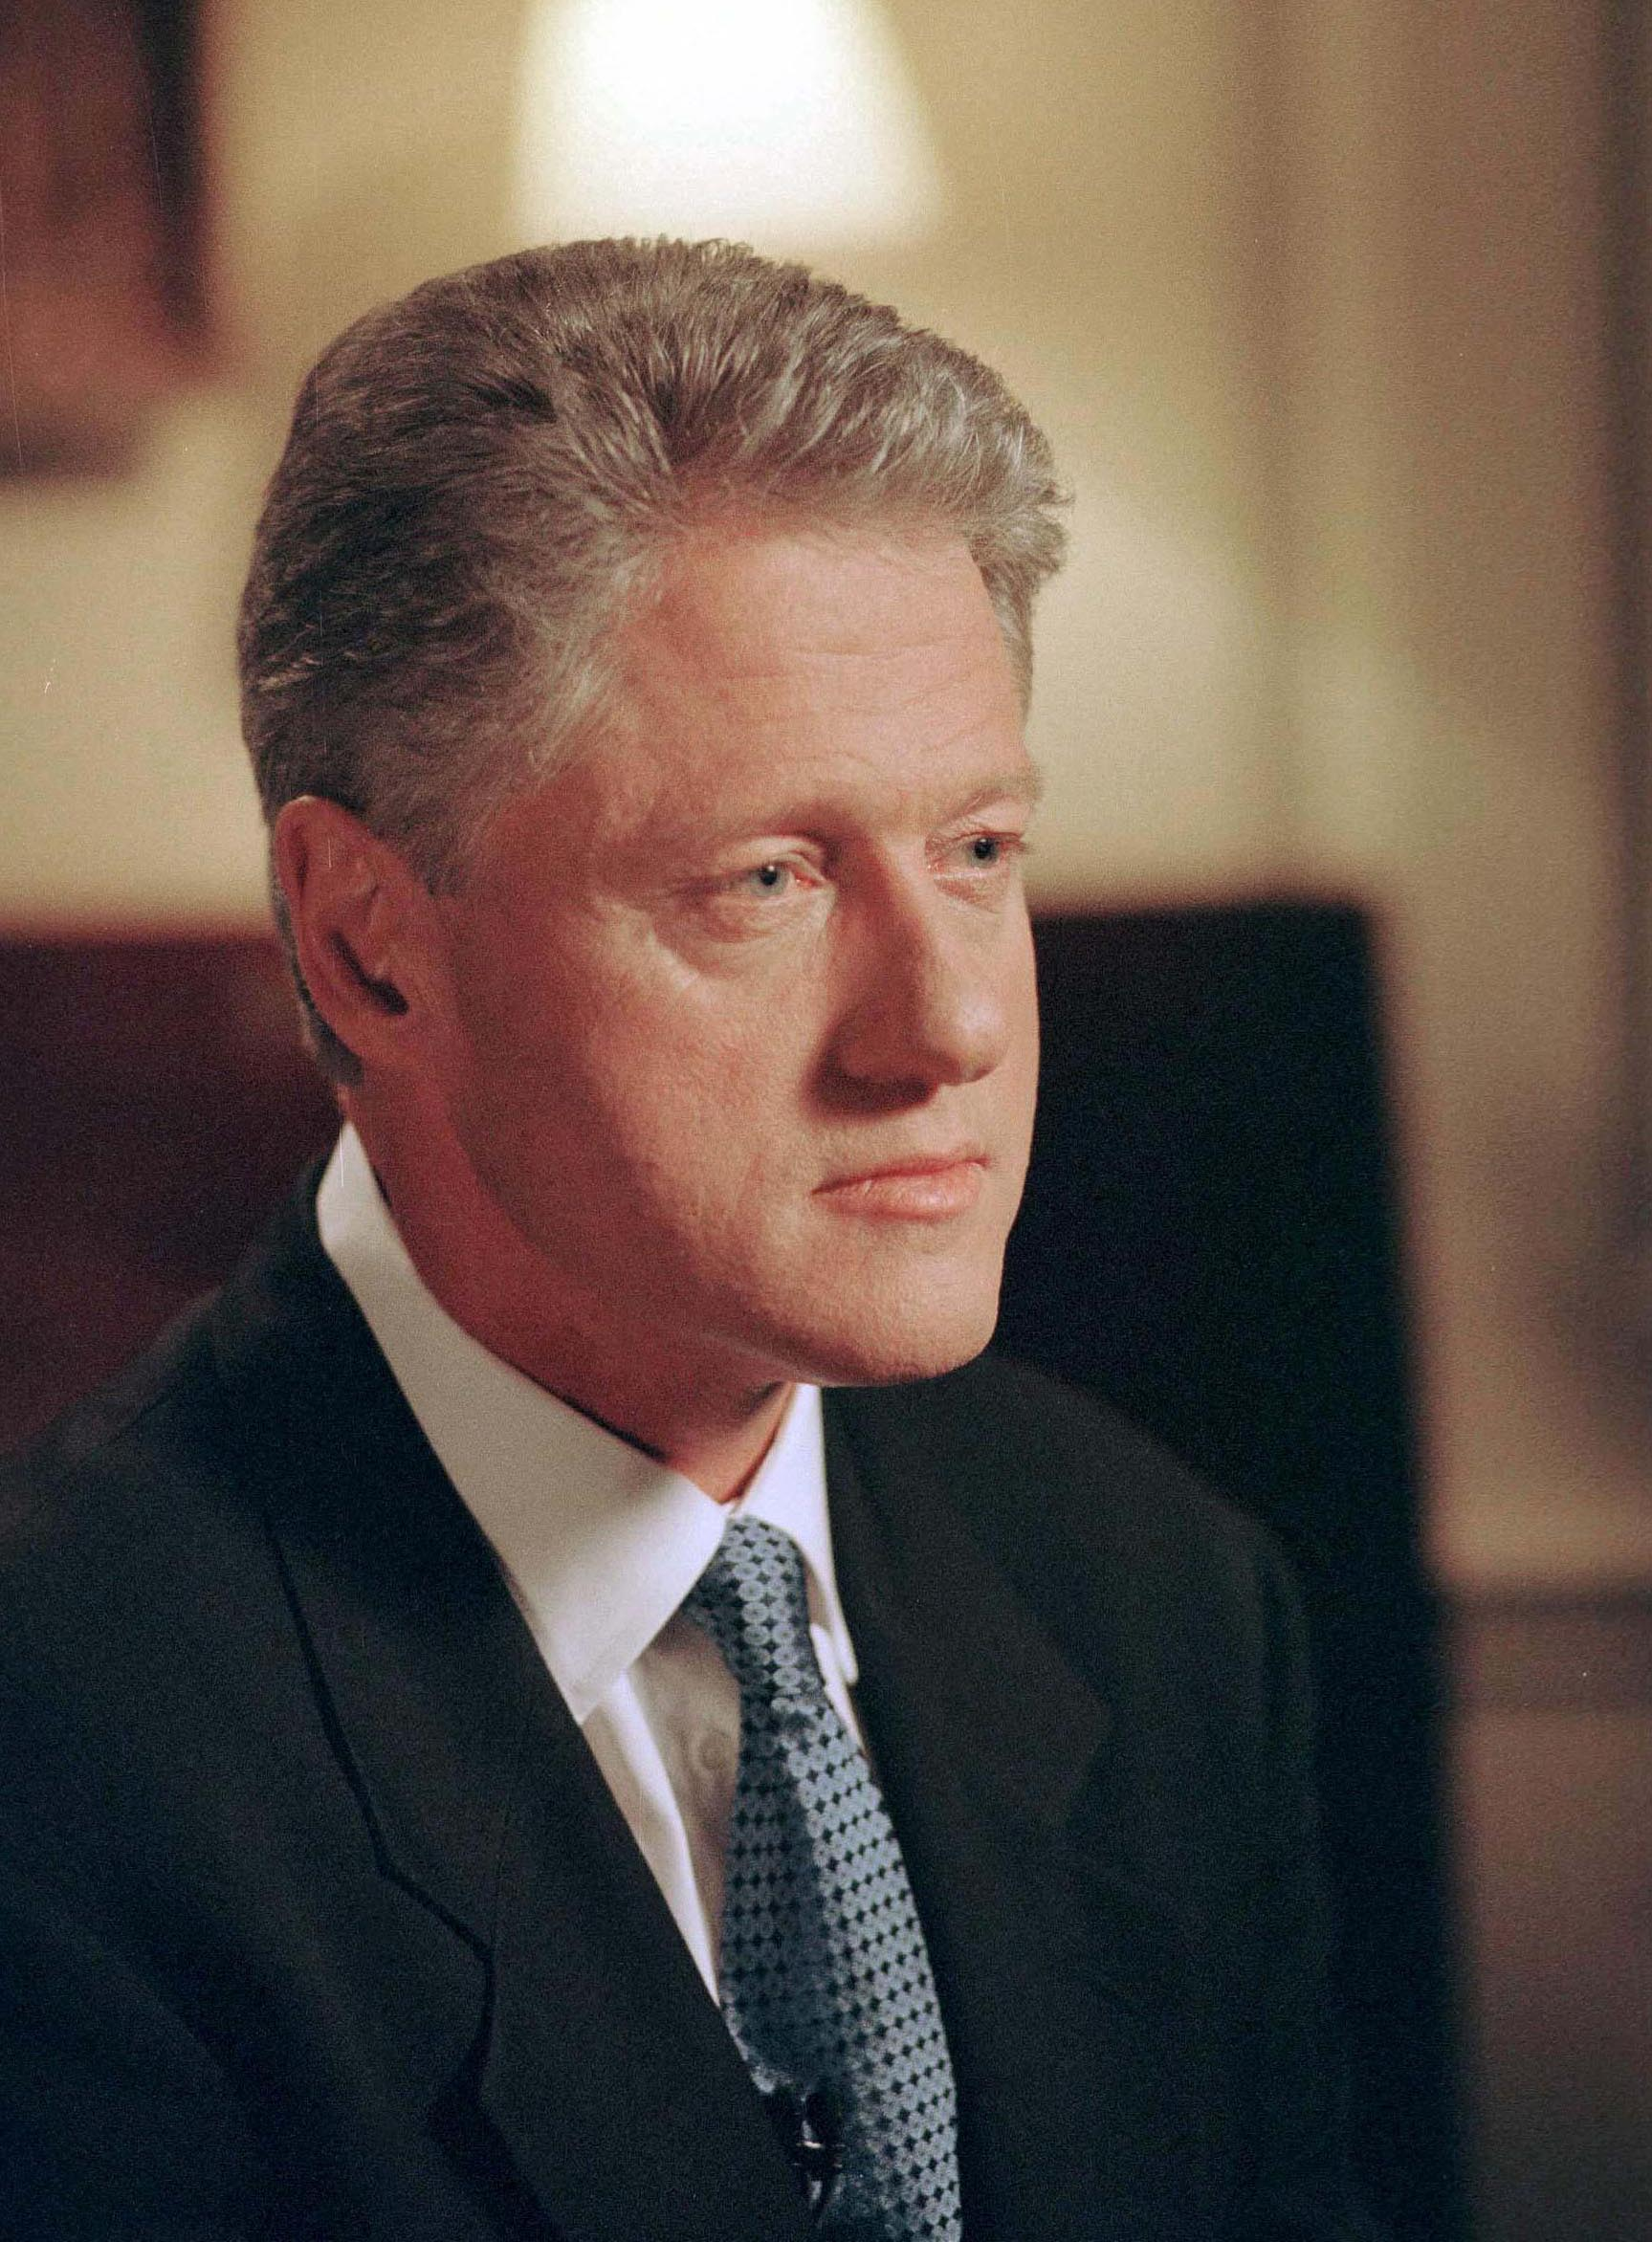 Bill Clinton before being impeached in 1998